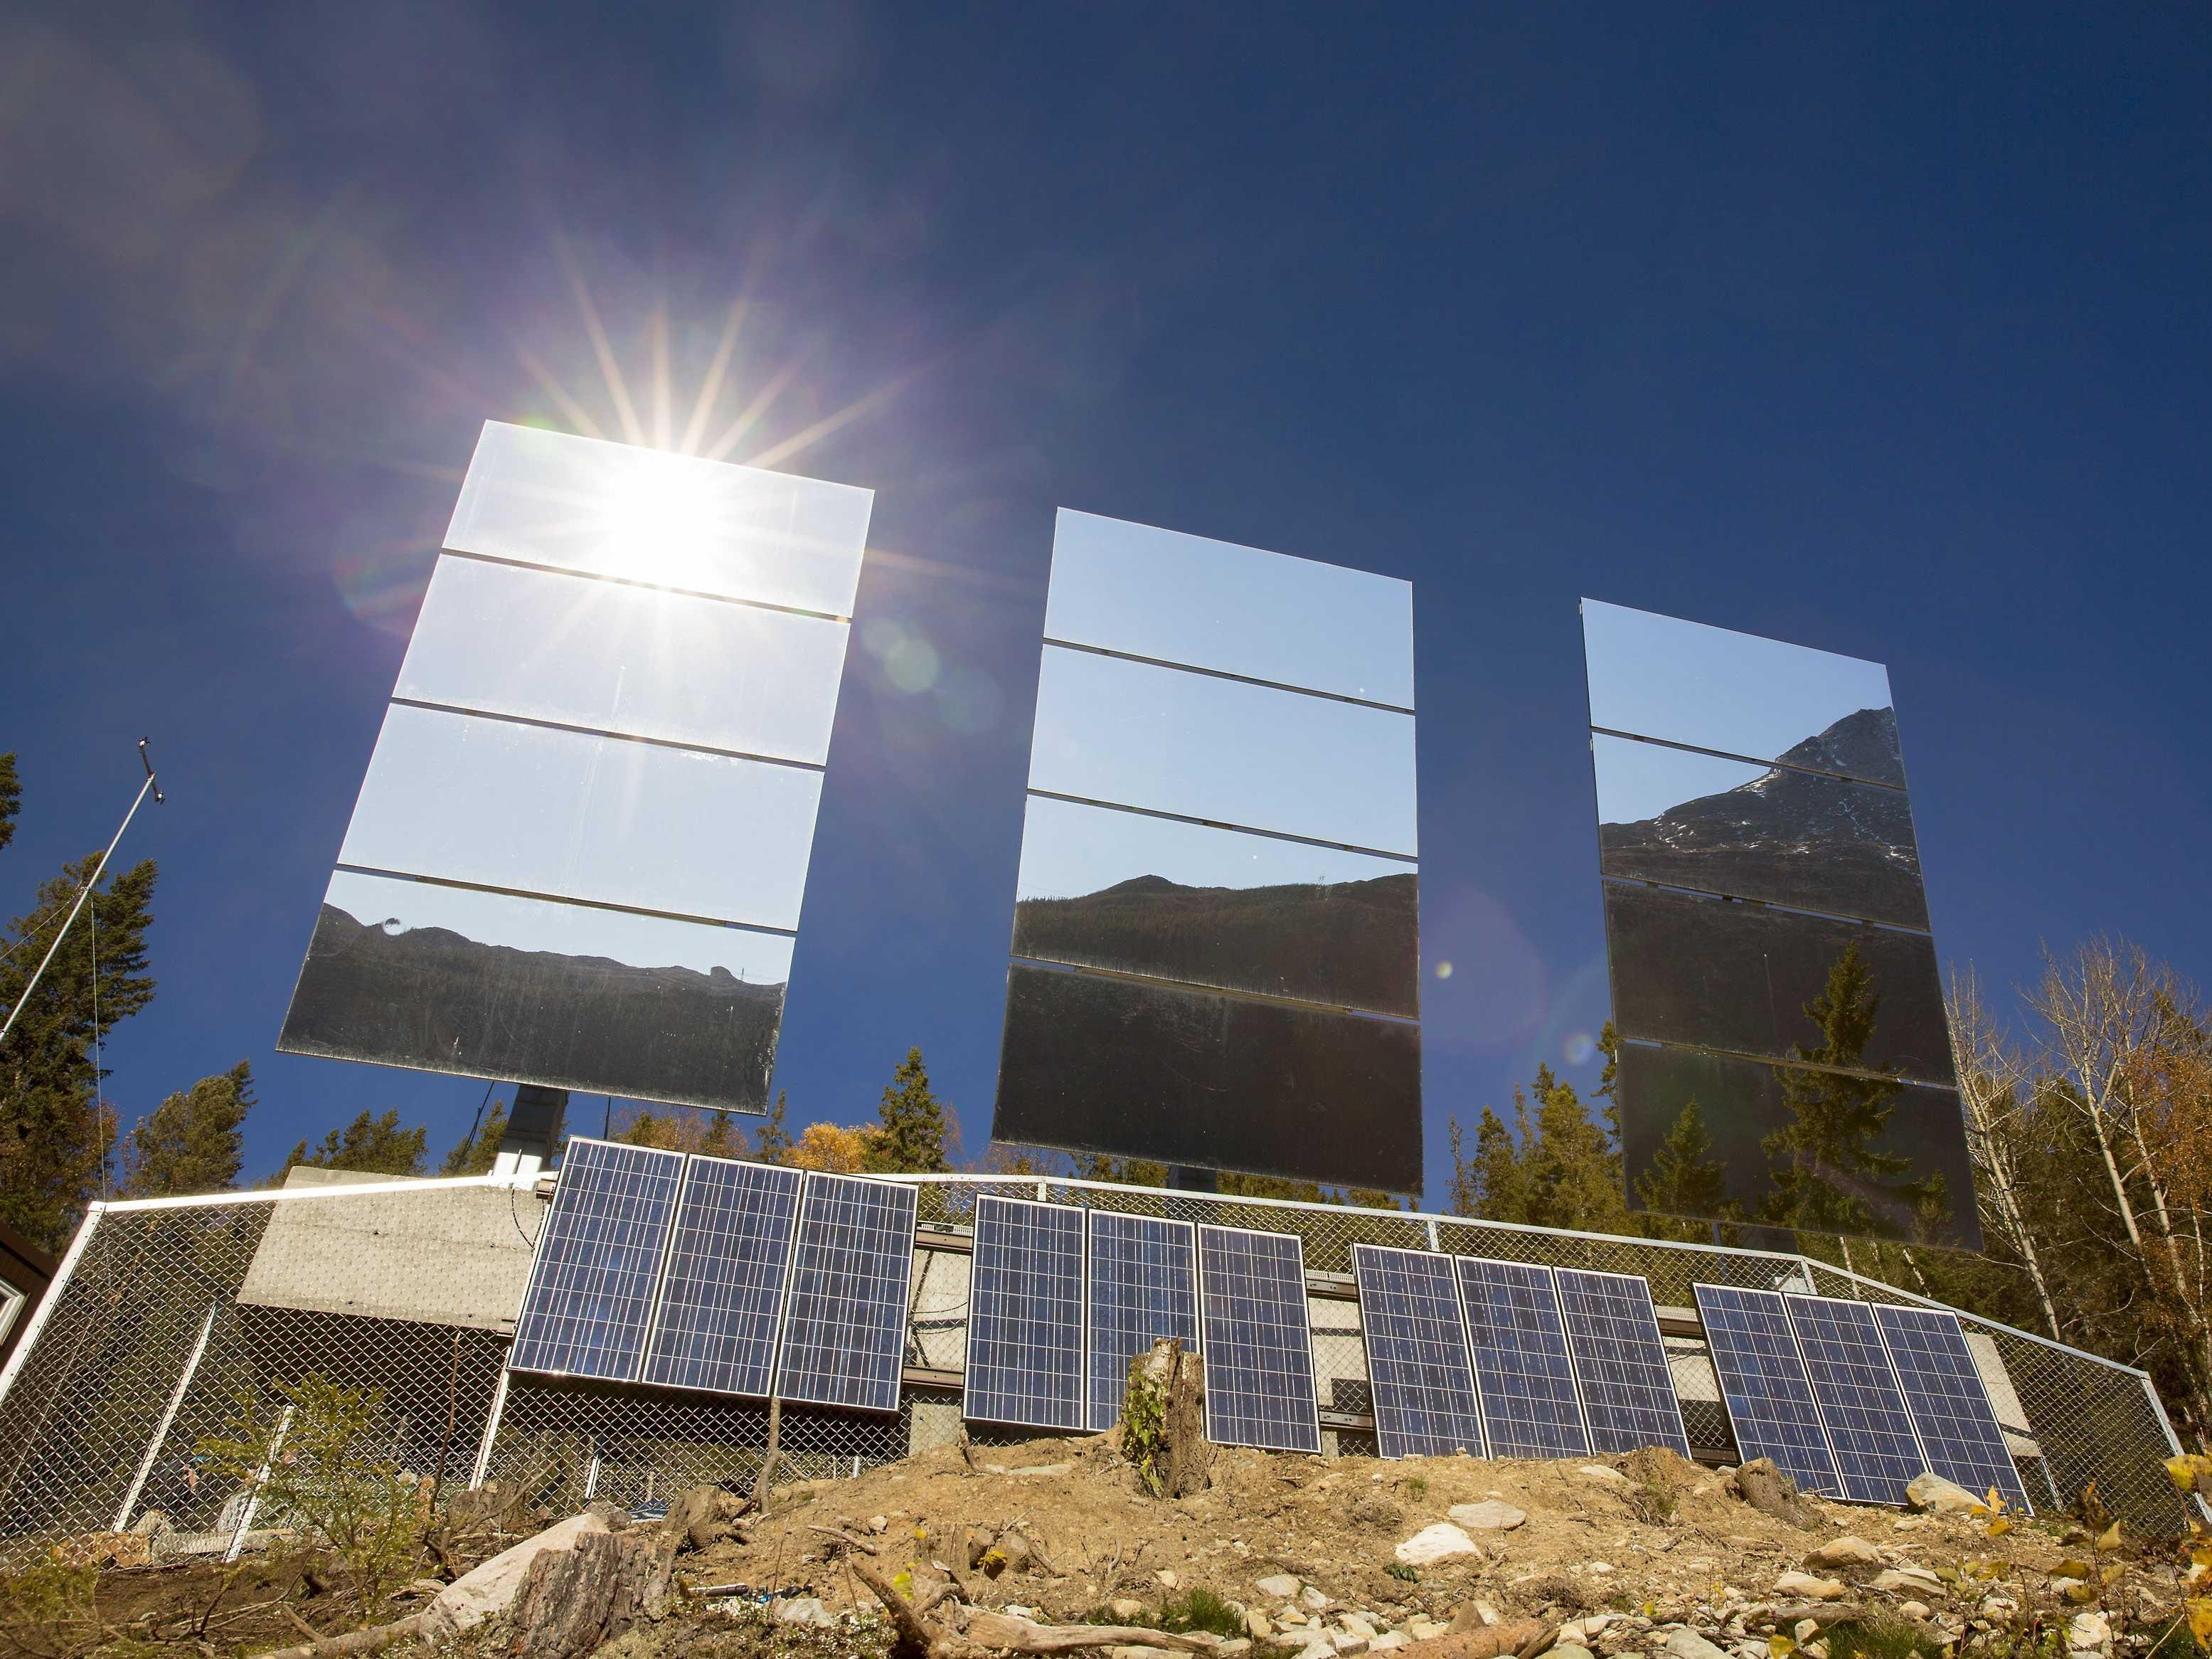 Giant Mirrors Installed On Norway Mountainside – Business Insider With Regard To Massive Mirrors (Image 17 of 20)